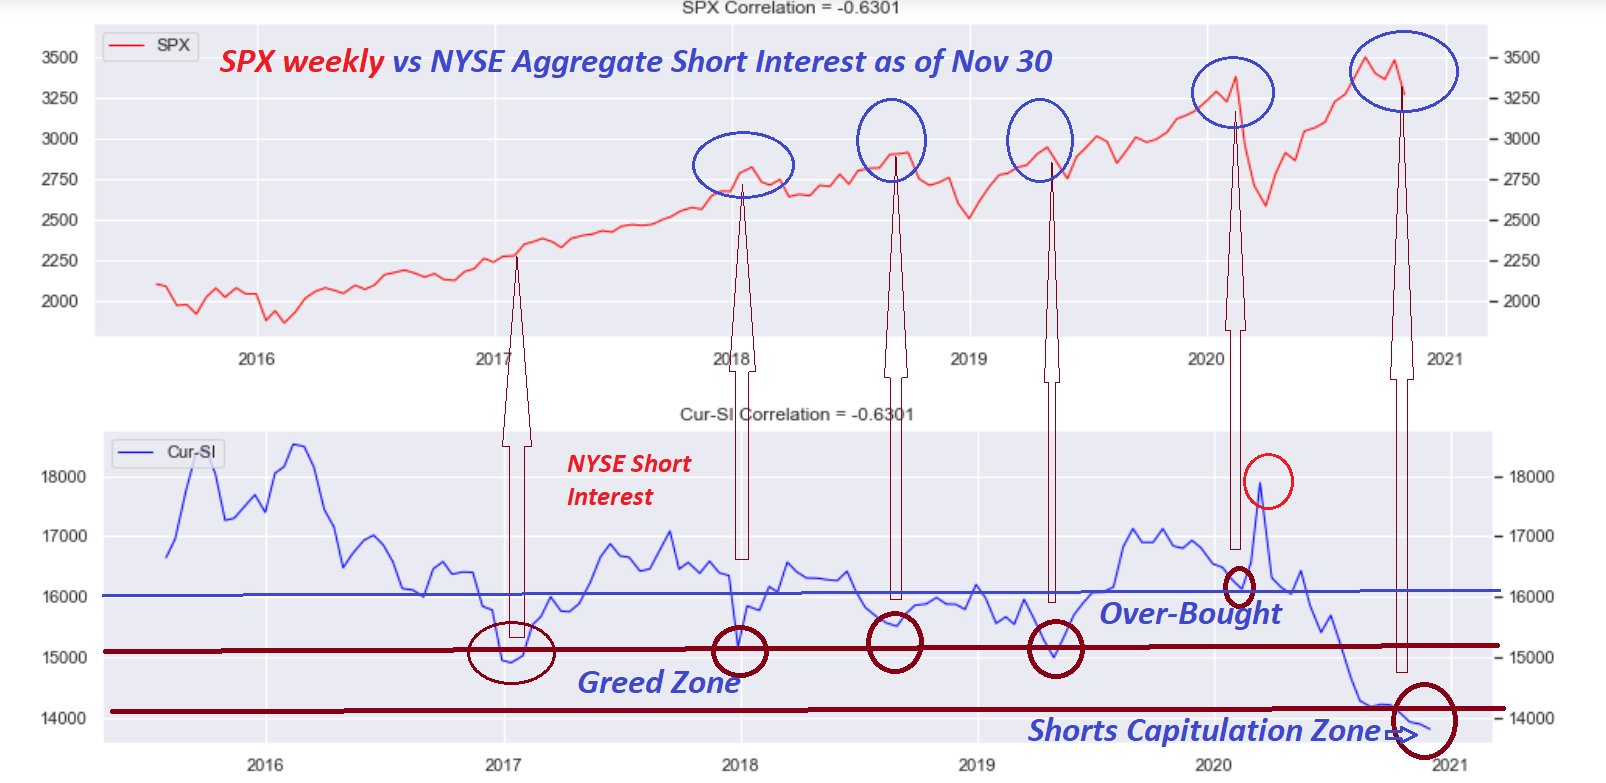 NYSE short interest shows total capitulation